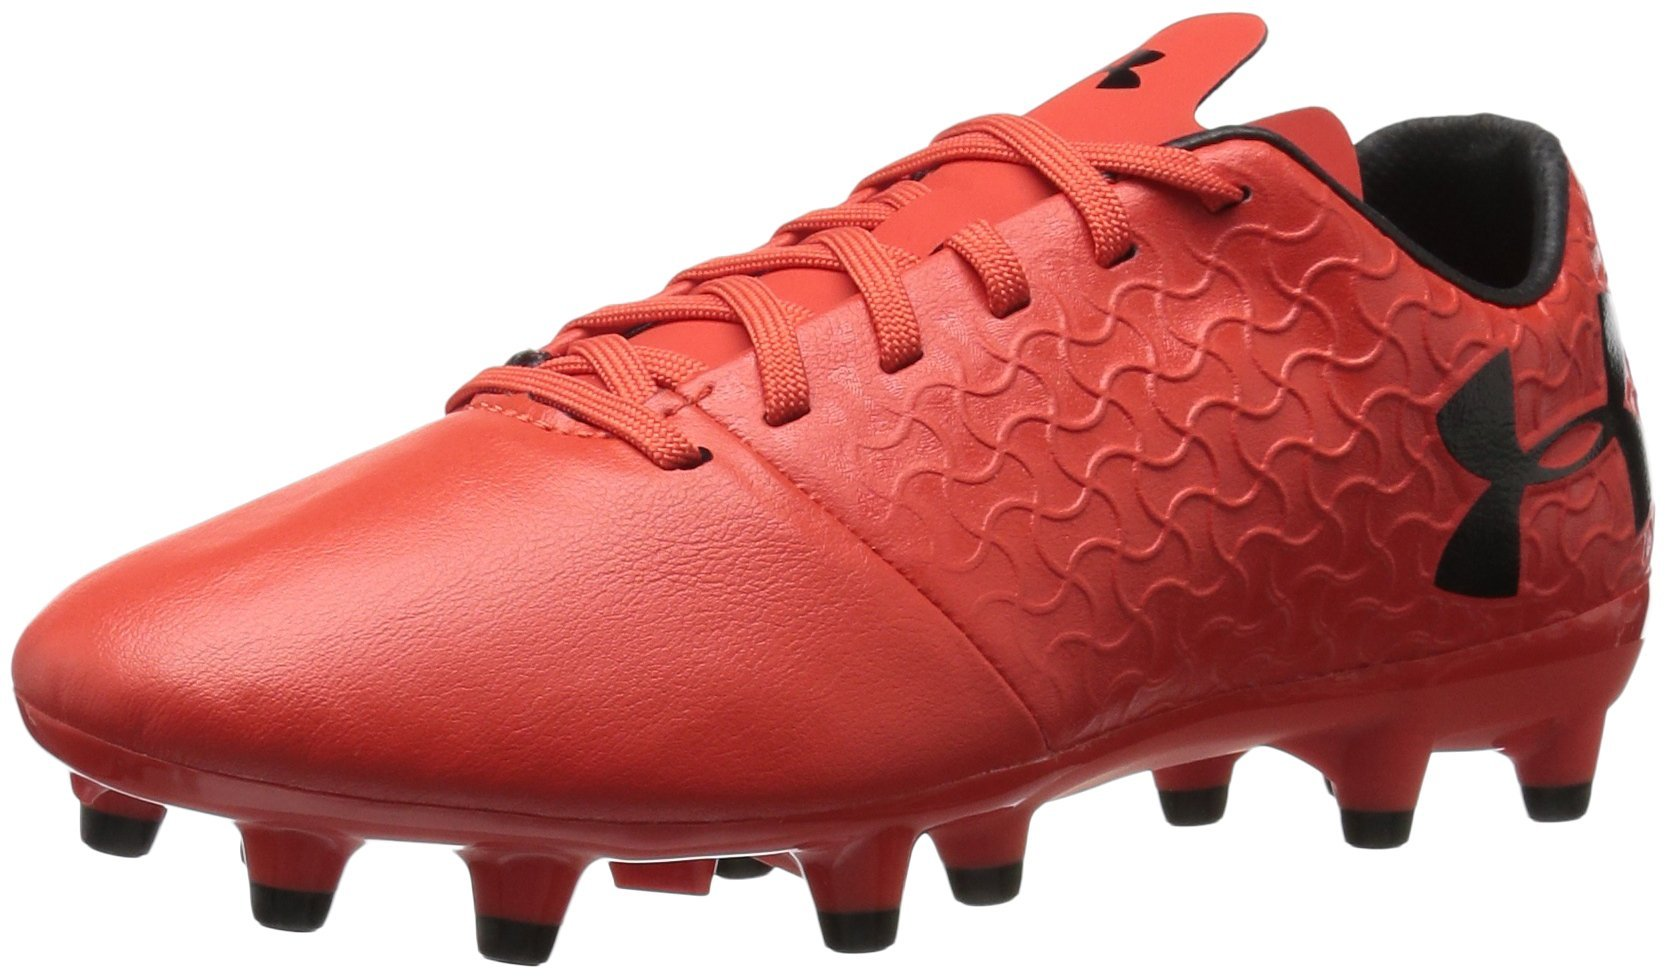 Under Armour Magnetico Select JR FG Soccer Shoe, Red, 4.5